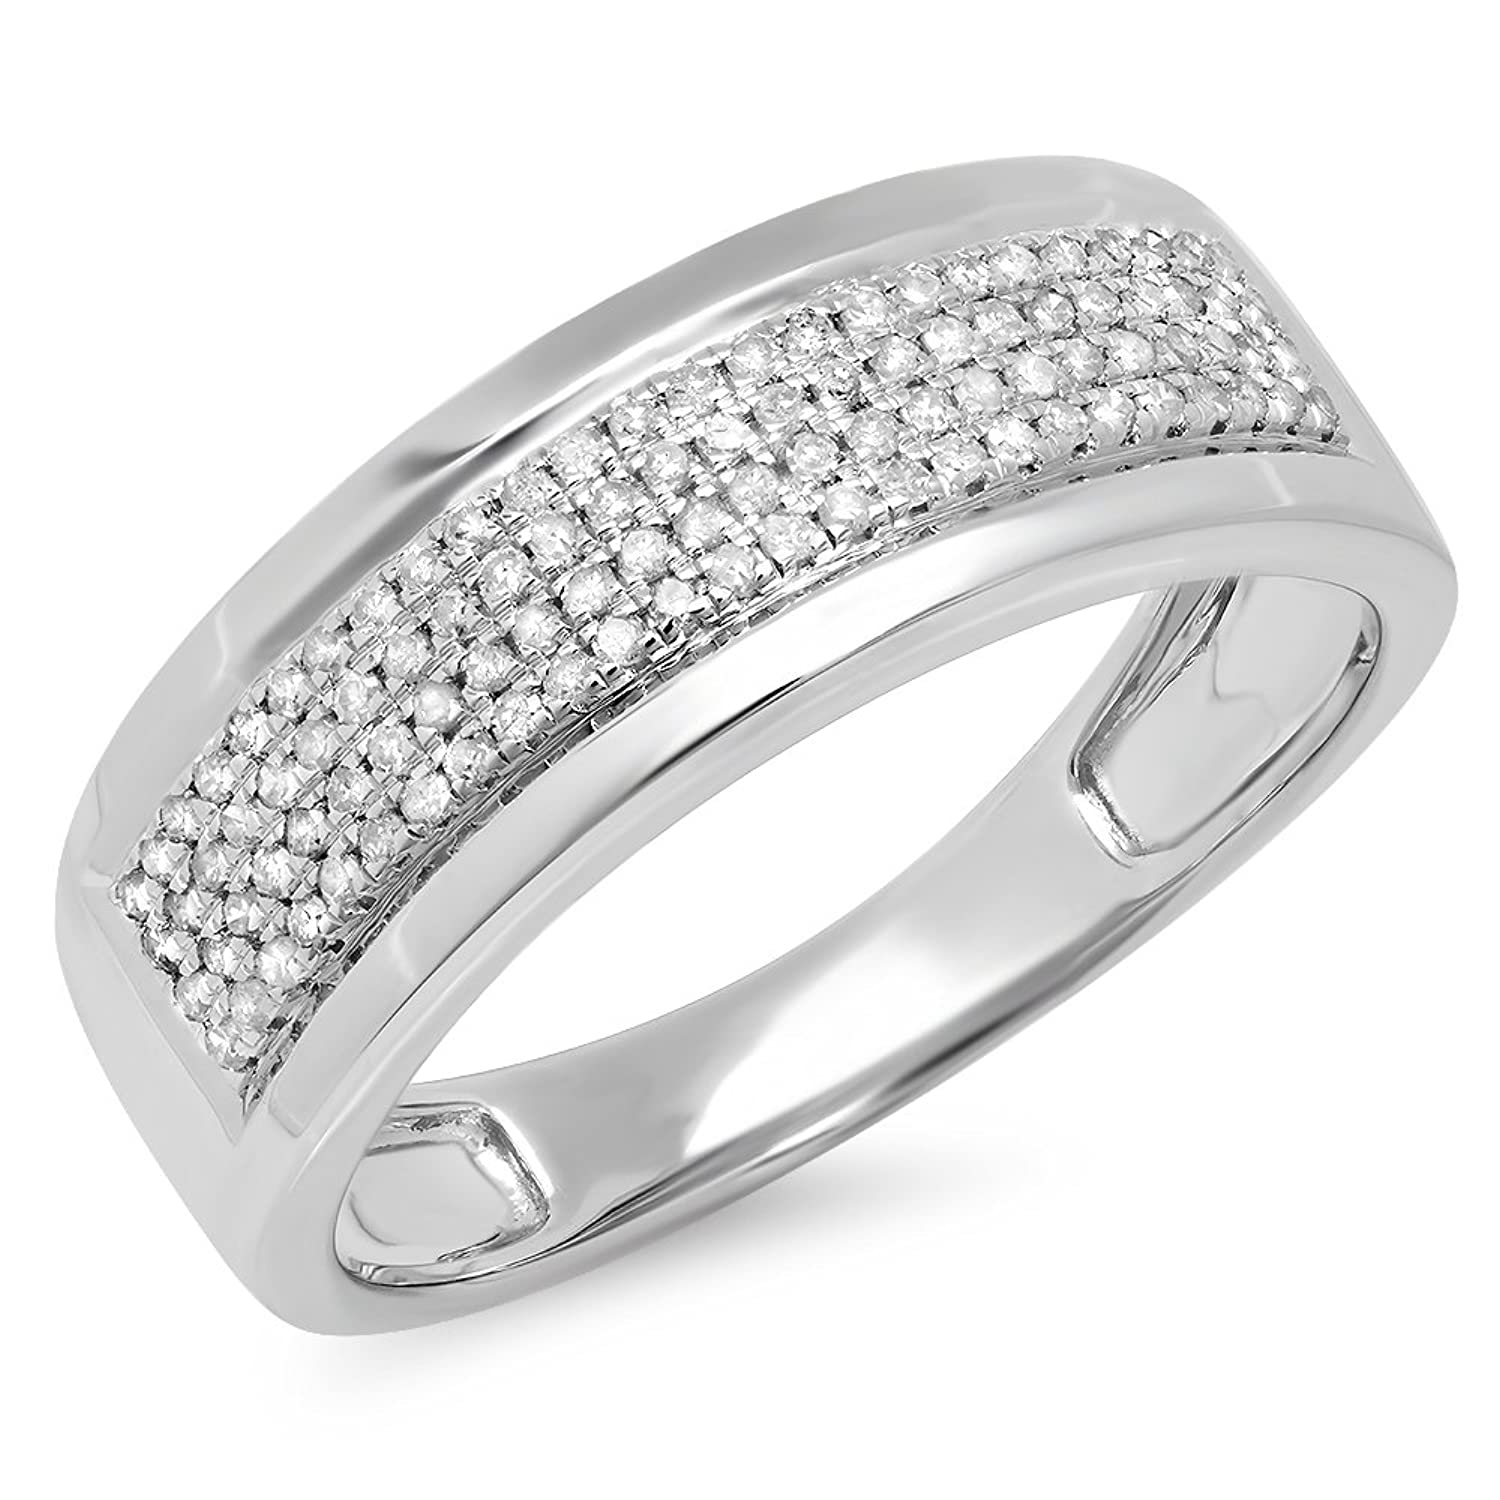 0.40 Carat (ctw) Sterling Silver Real Round Cut Diamond Men's Flashy Pinky Wedding Ring